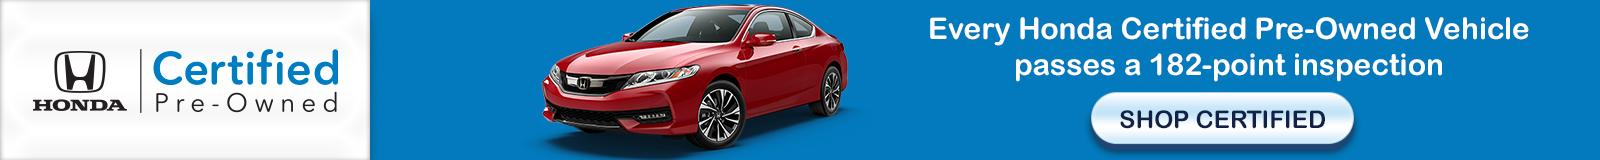 honda certified listing page banner